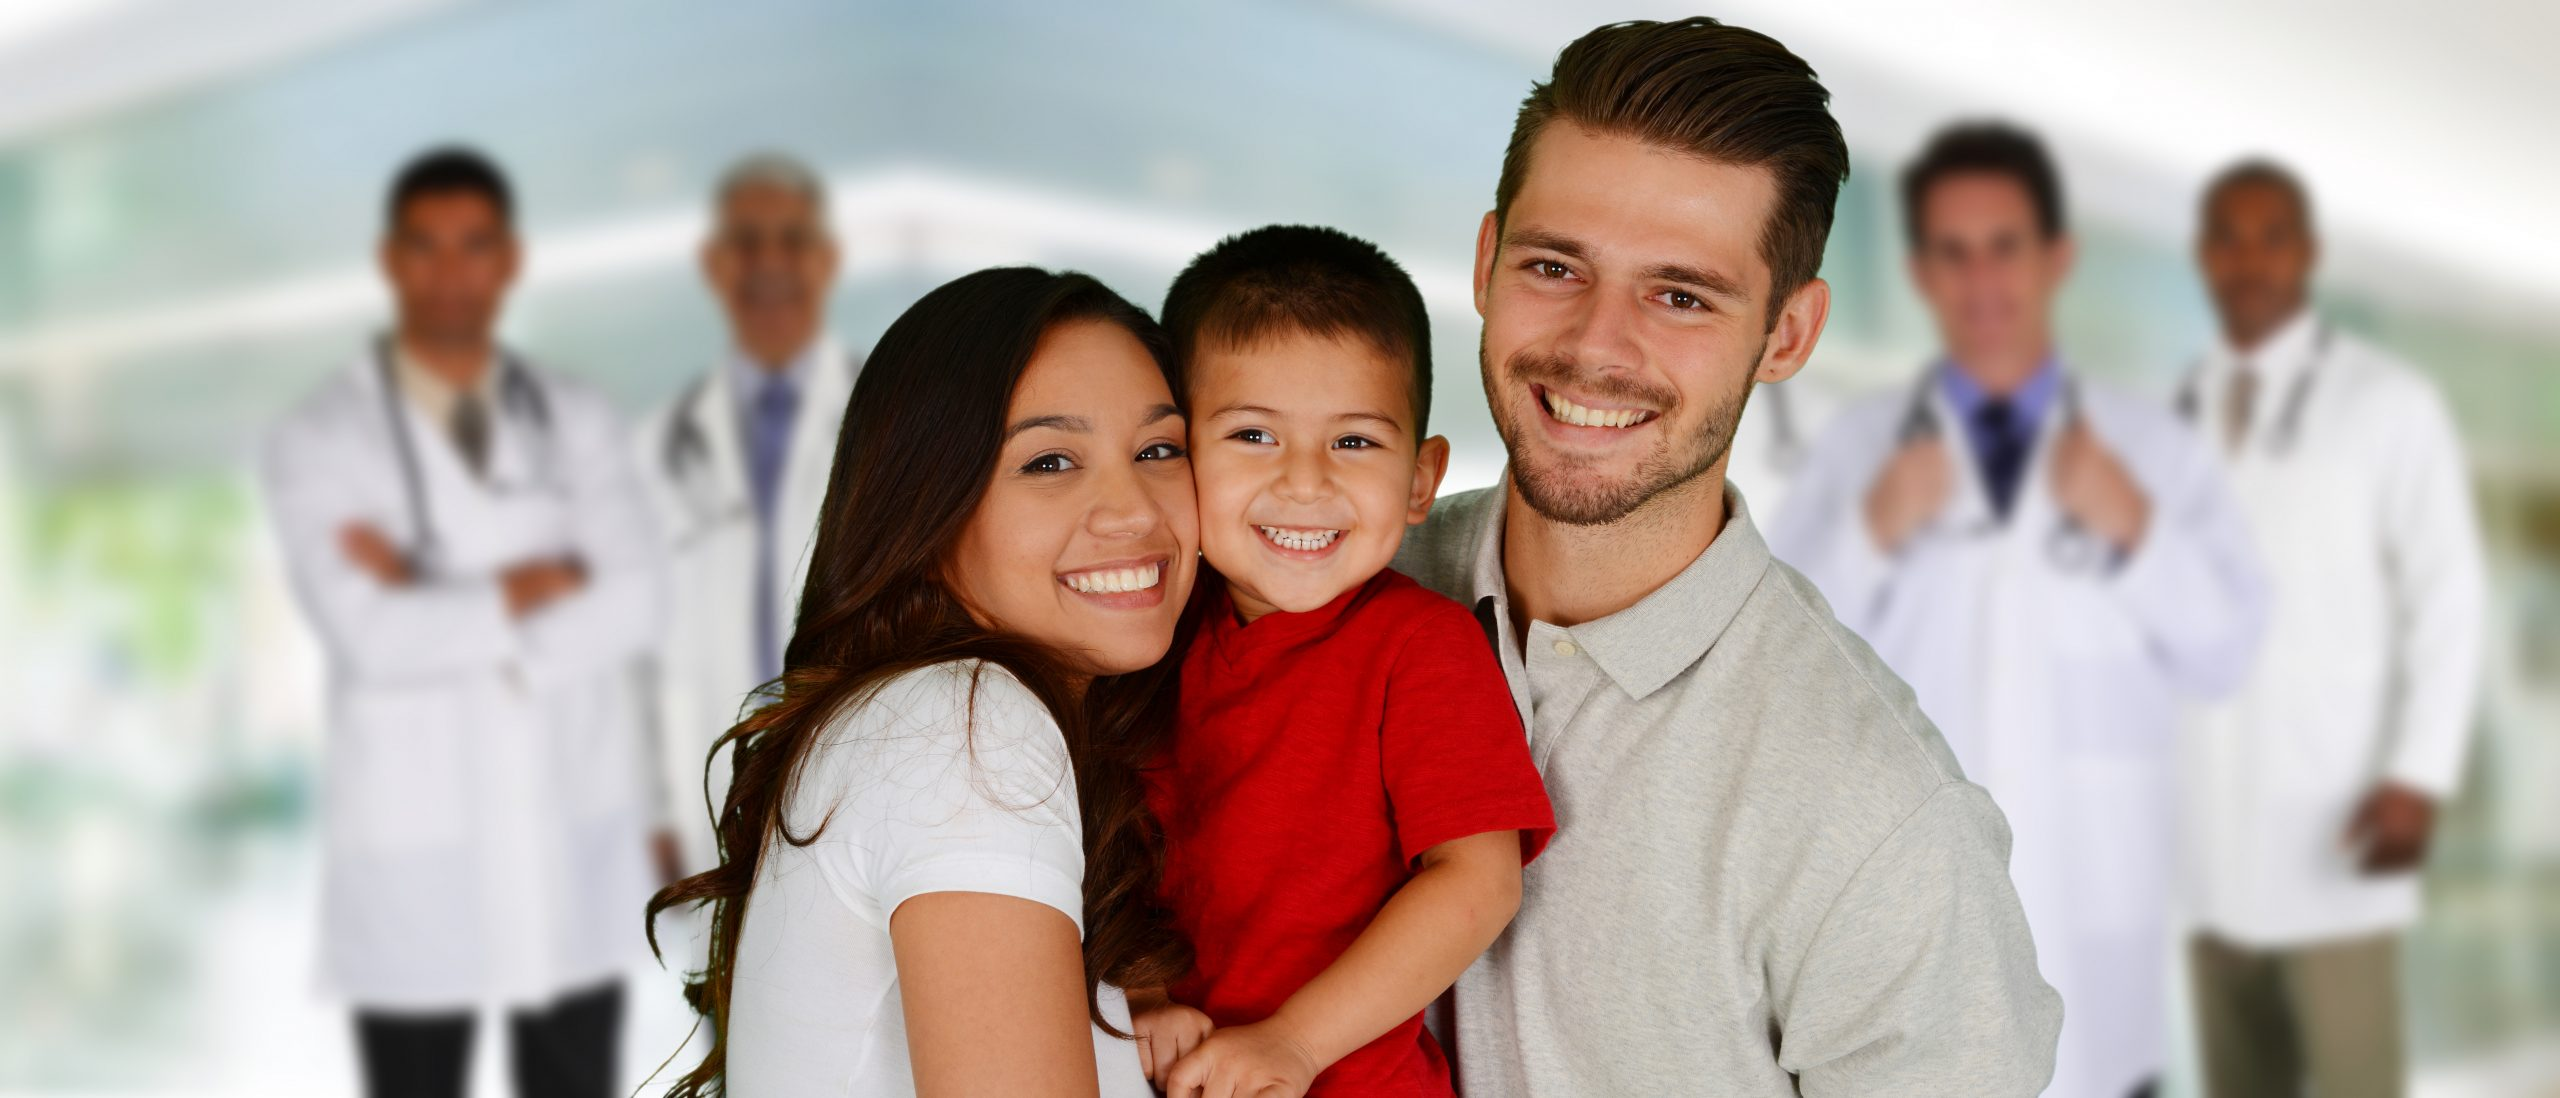 How to Get the Best Health Insurance Quotes Online